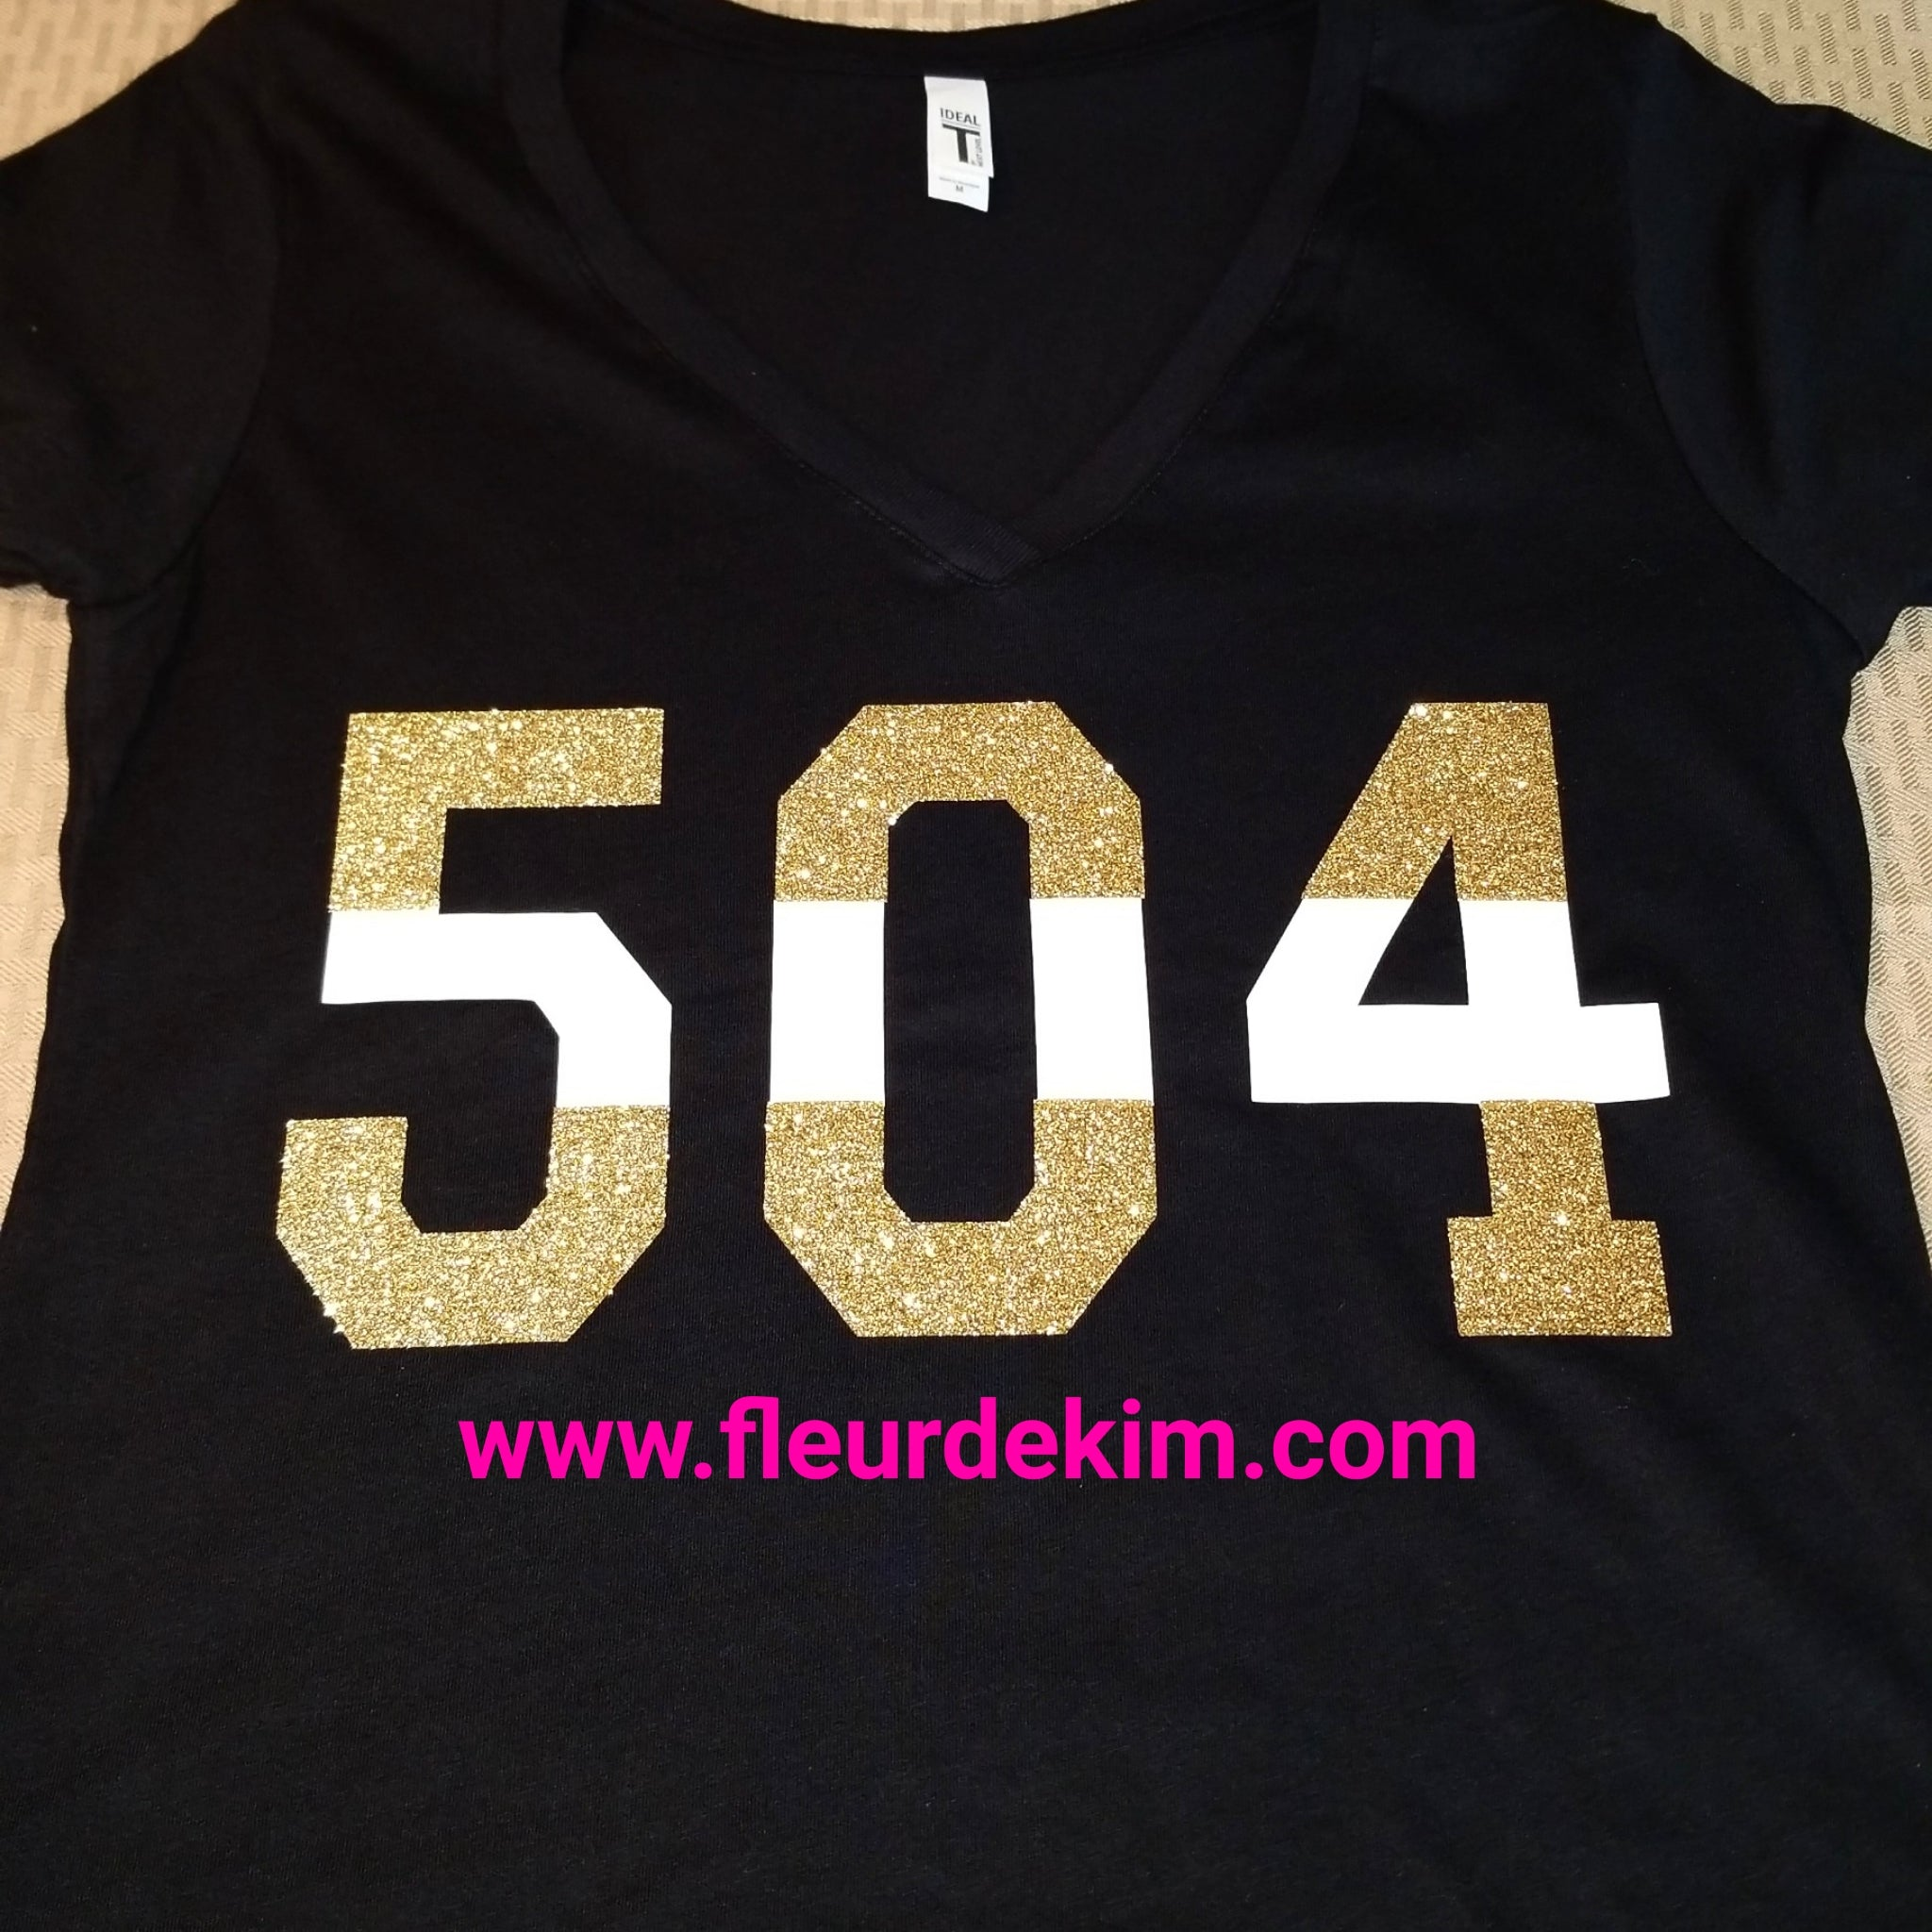 Black n gold n white 504 tshirts